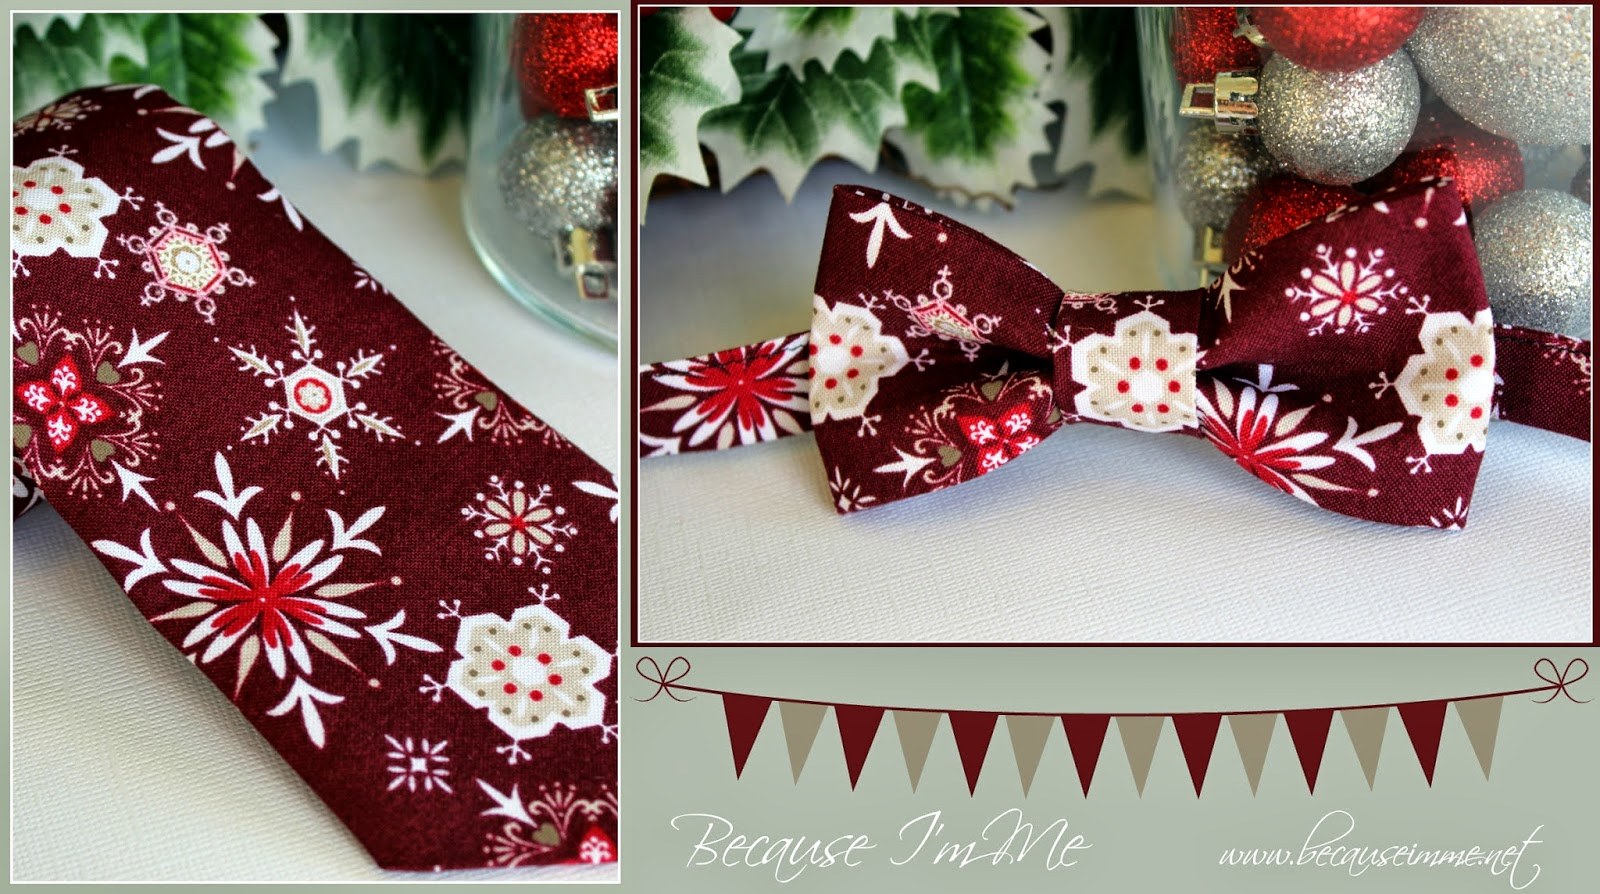 Because I'm Me burgandy snowflakes cotton bow and neck ties, for winter and Christmas